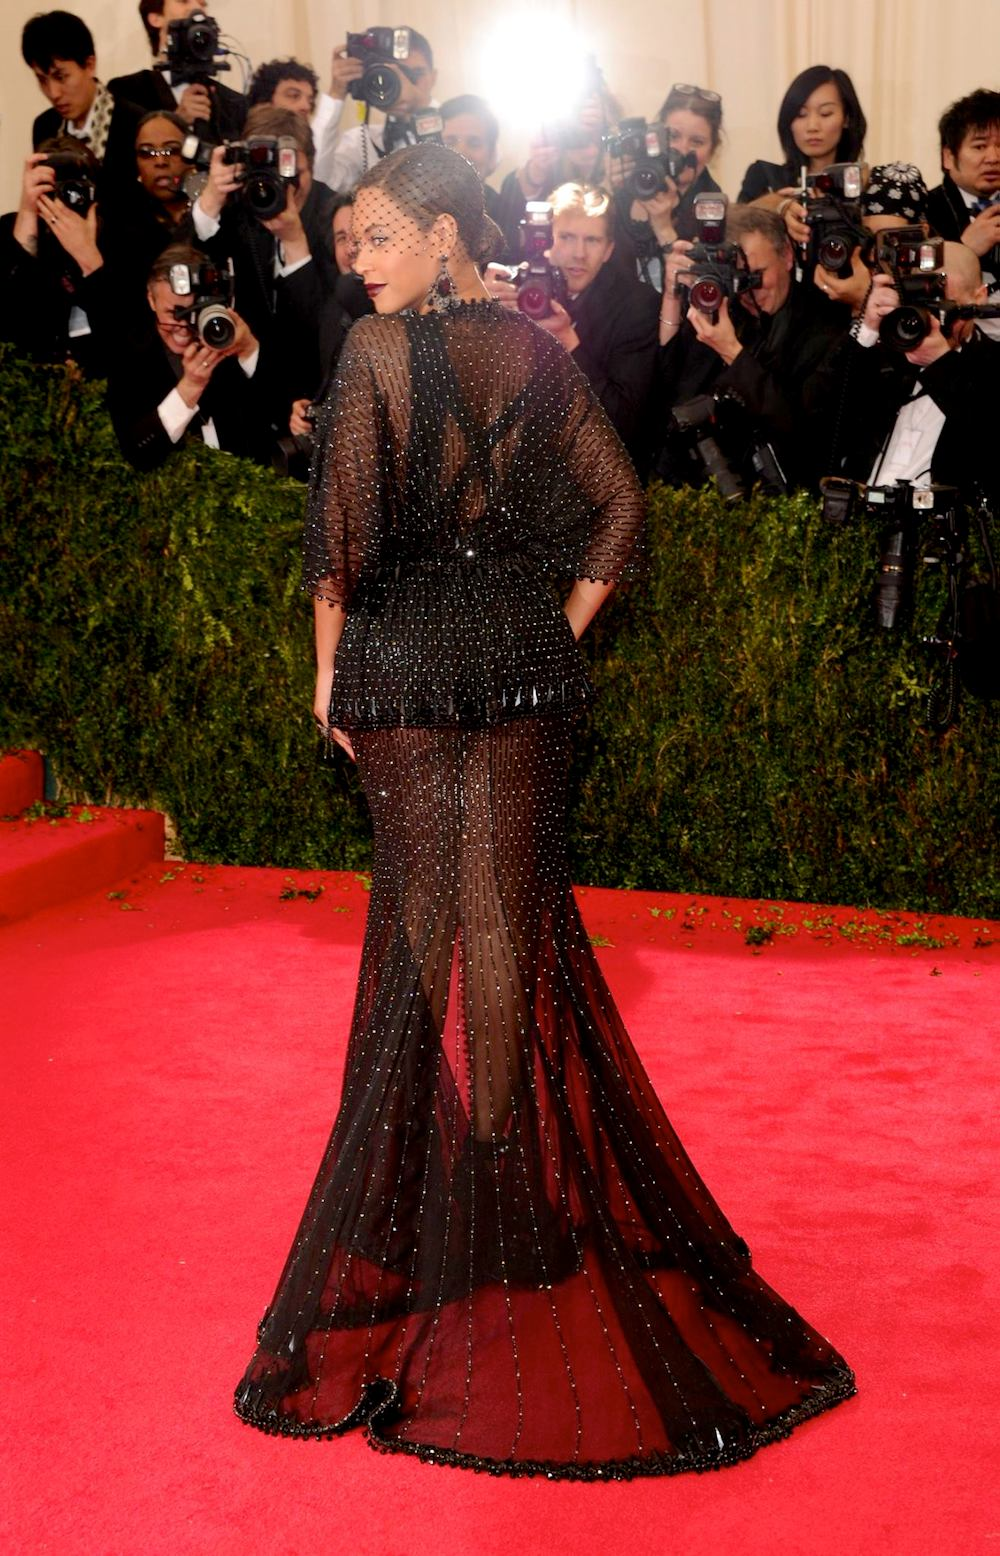 beyonce-fashion-at-met-gala-2014